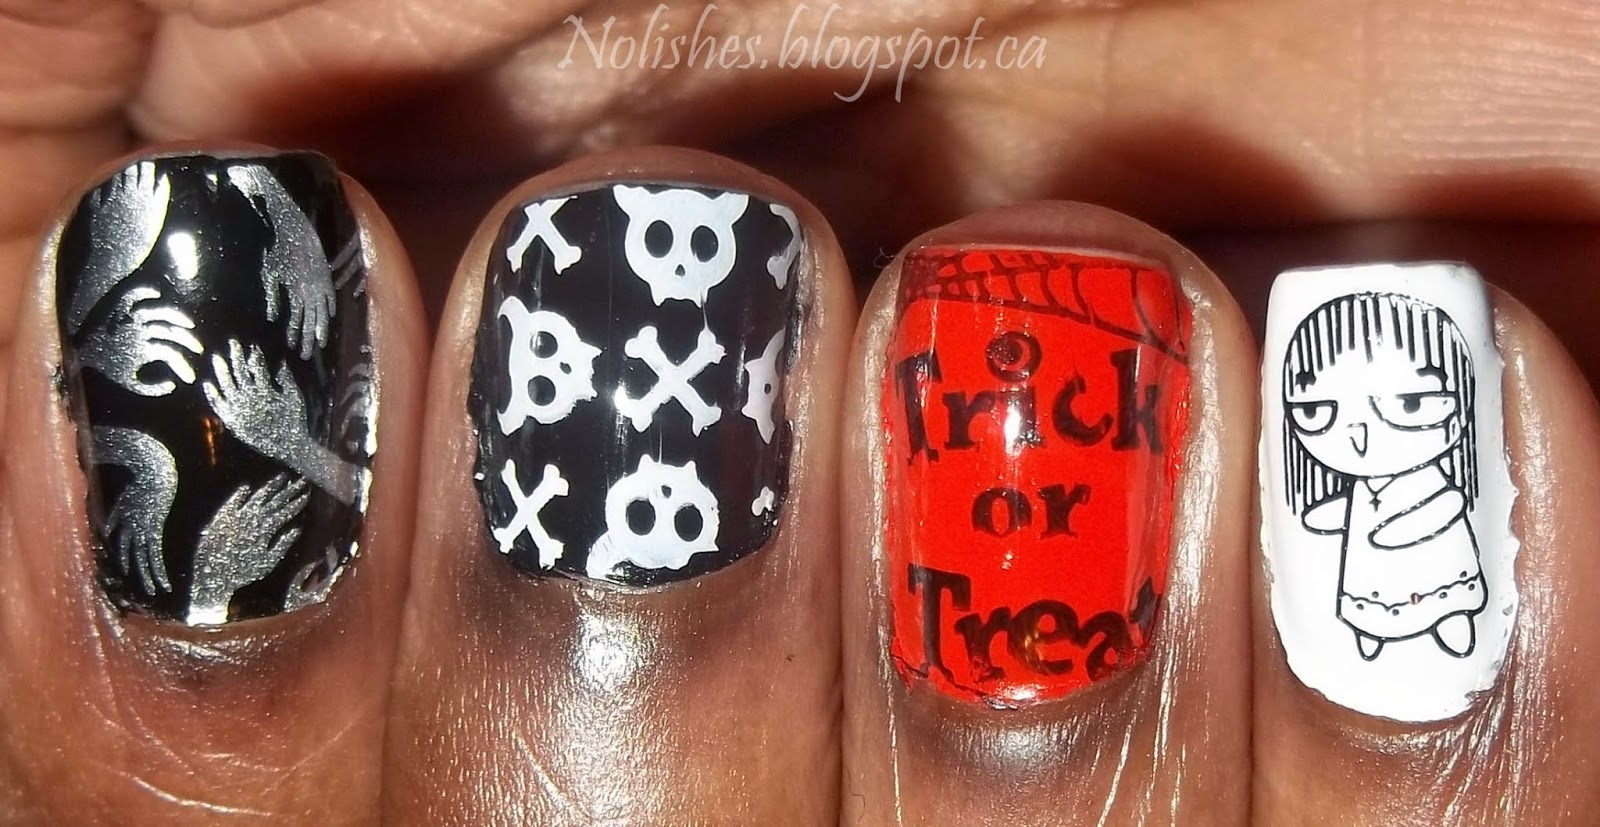 Halloween Themed Nail Stamping Manicure using Orange, Black, Silver, White and Yellow Nail Polishes (Right Fingers)